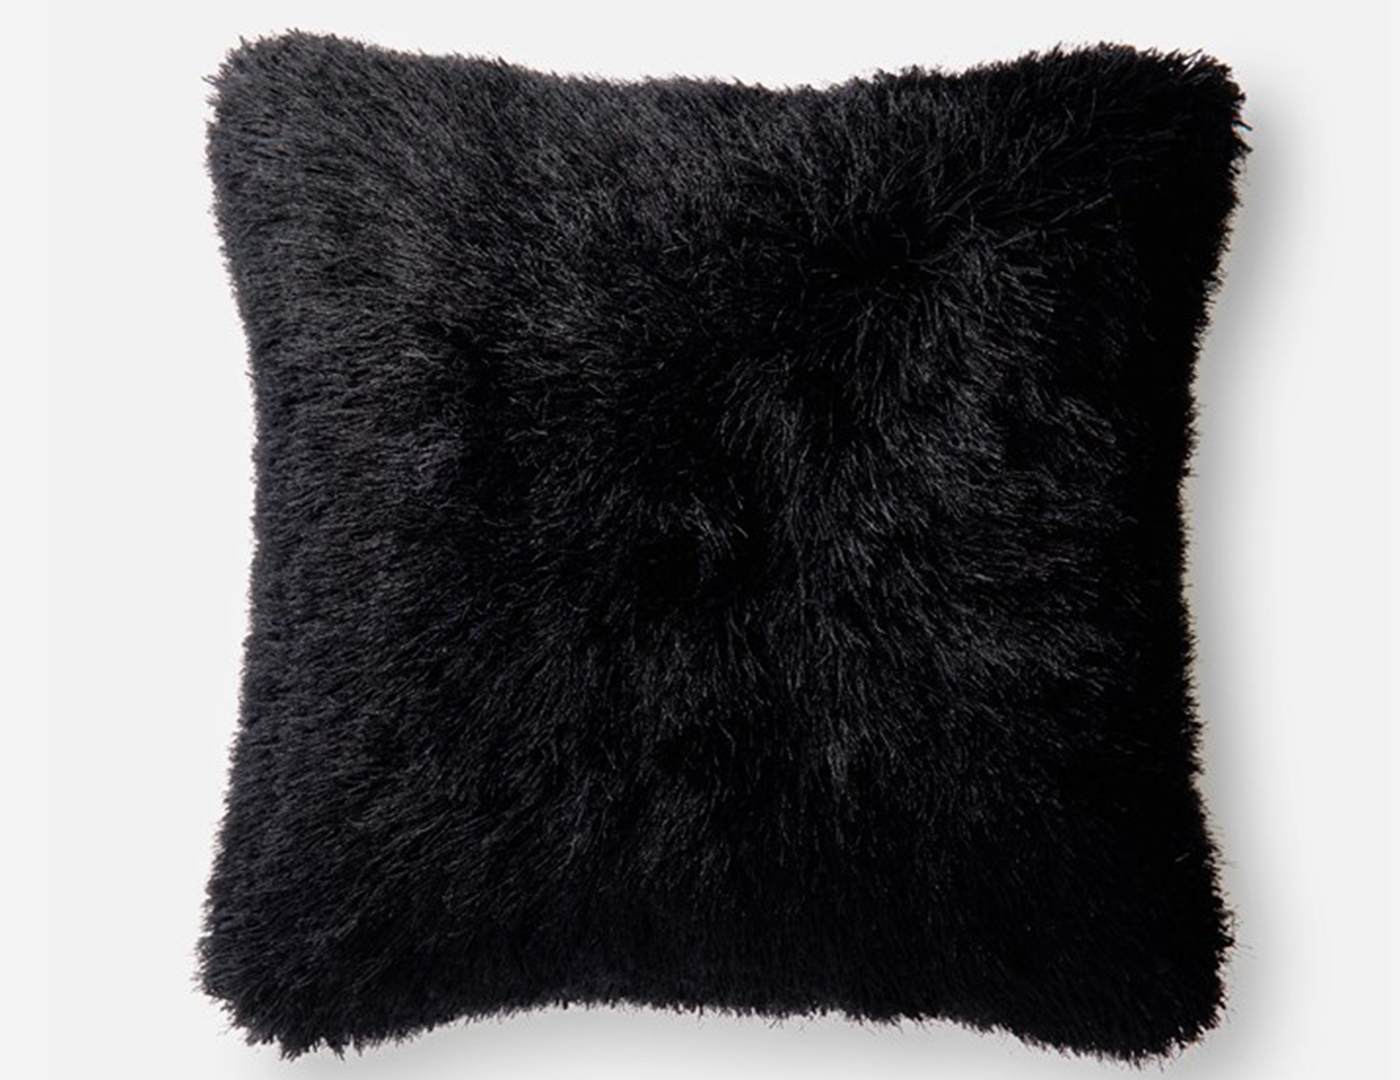 Black Fluffy Faux Fur Pillow